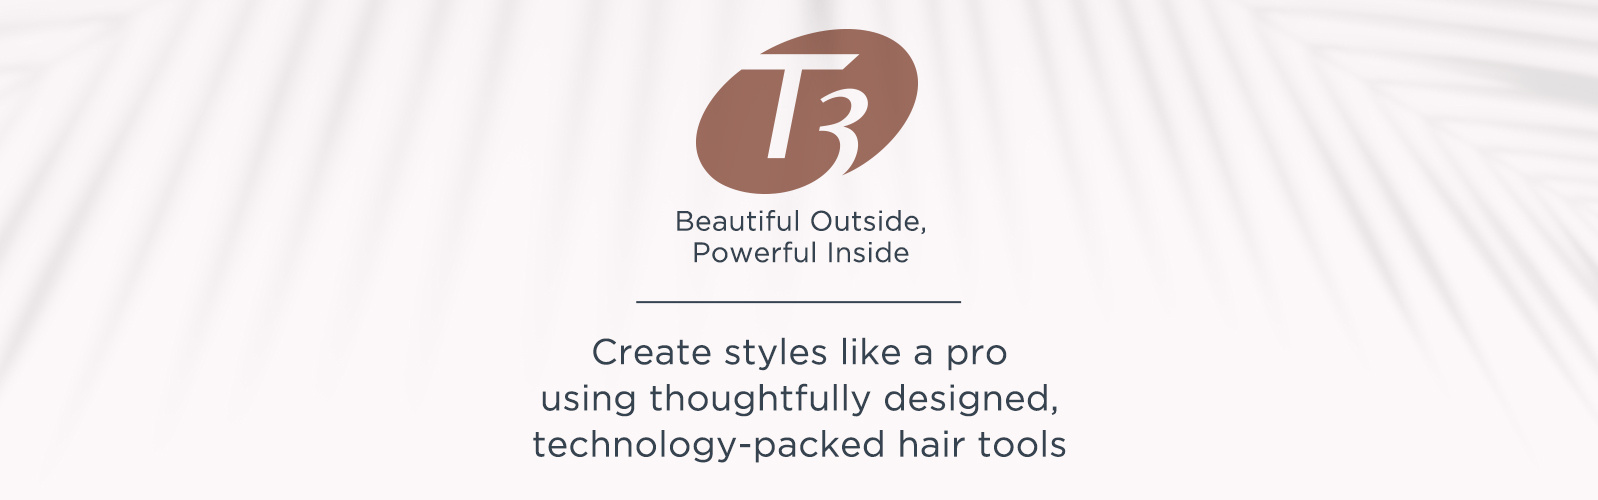 T3. Beautiful Outside, Powerful Inside. Create styles like a pro using thoughtfully designed, technology-packed hair tools